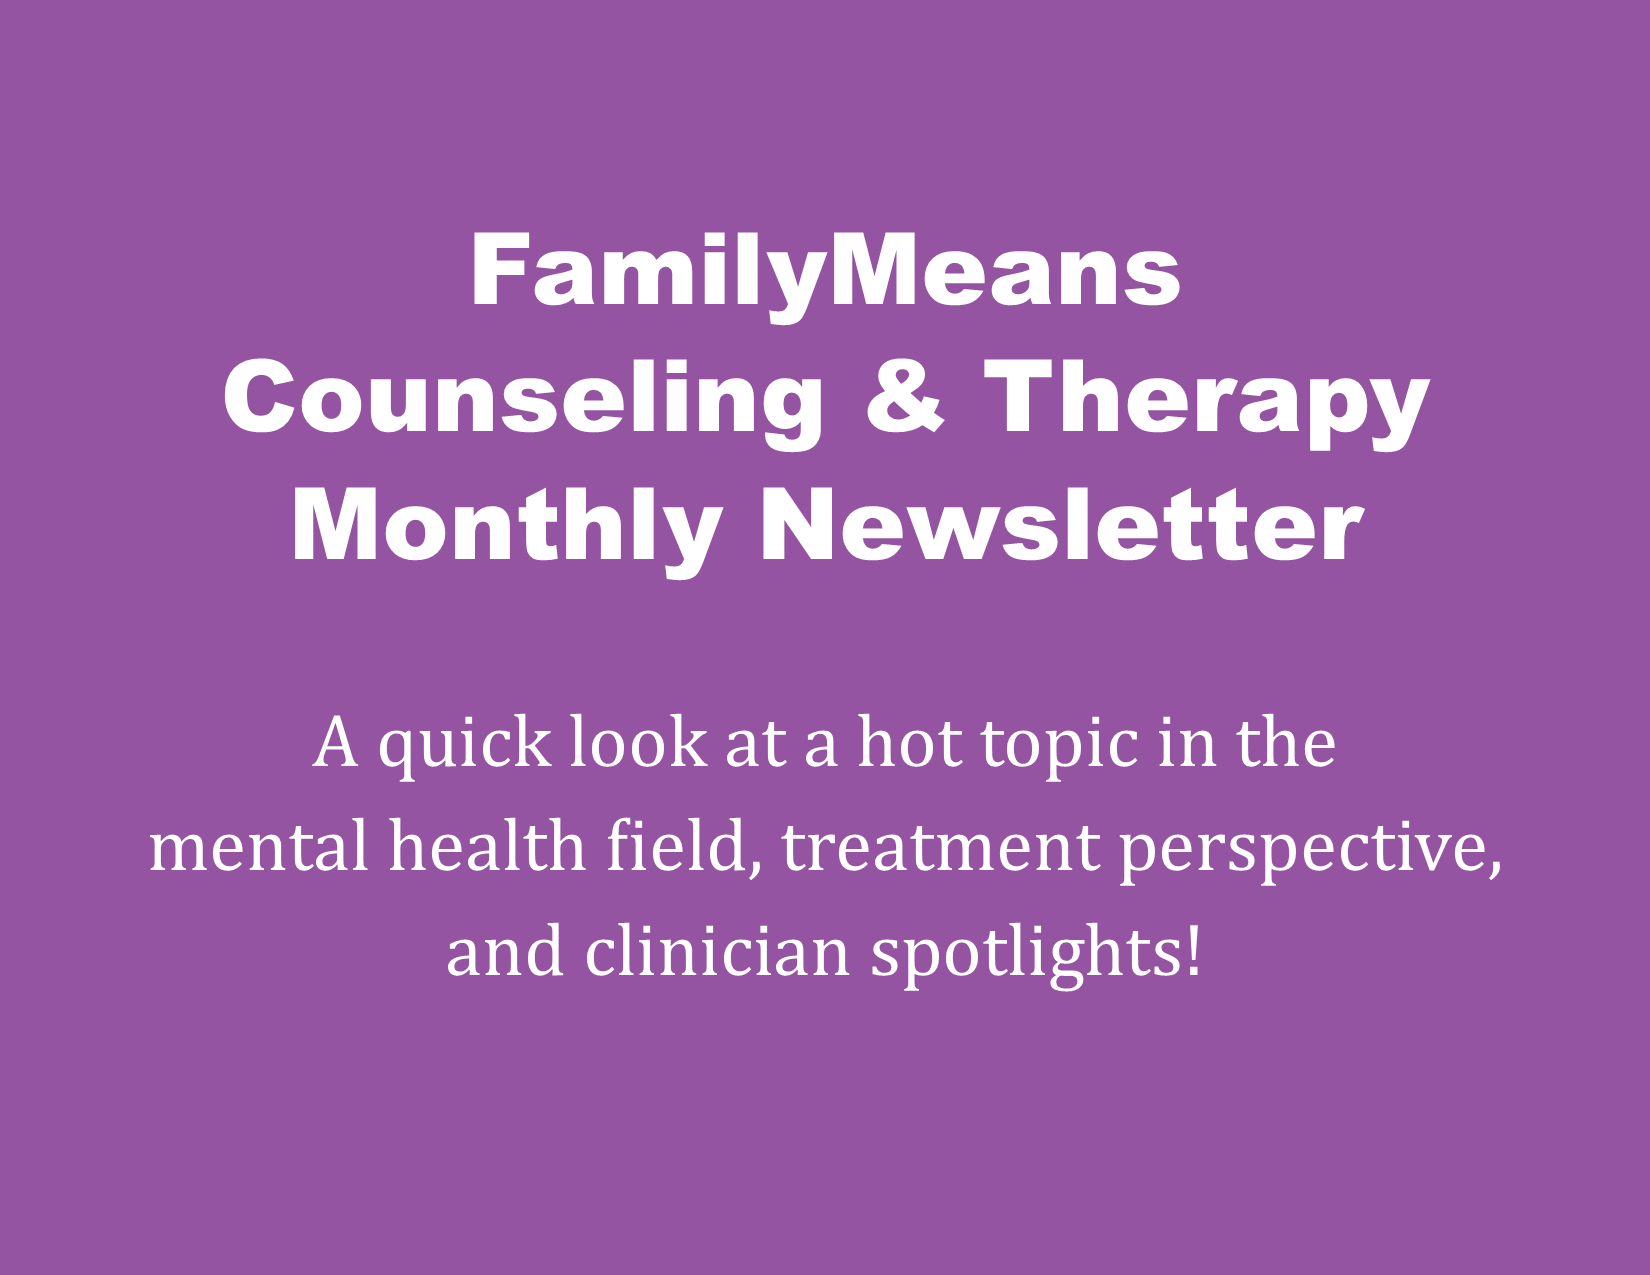 Counseling & Therapy Newsletter October 2020